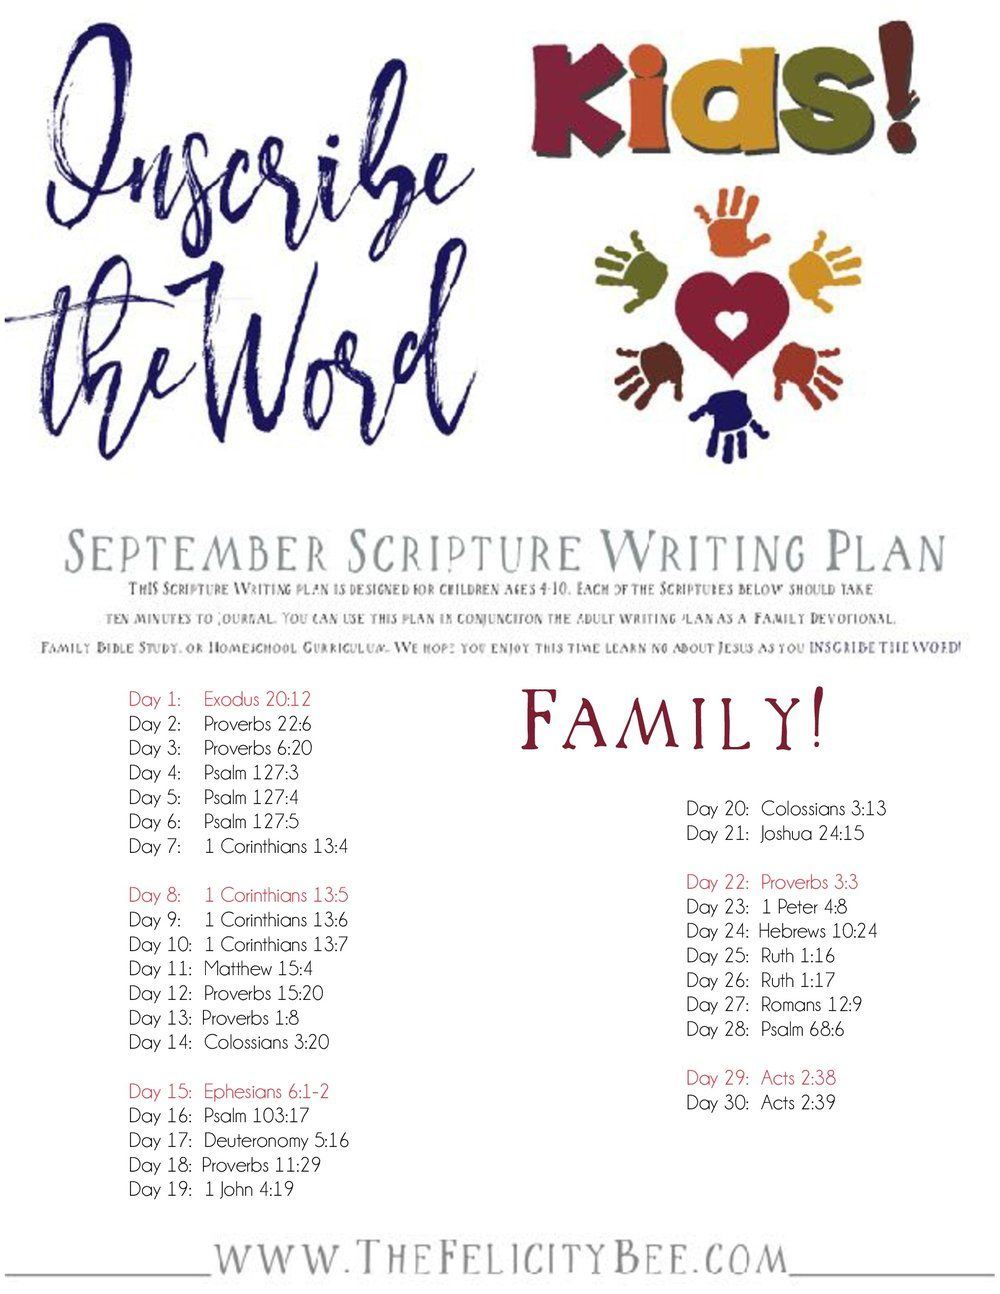 Inscribe the Word KIDS!       September Scripture Writing